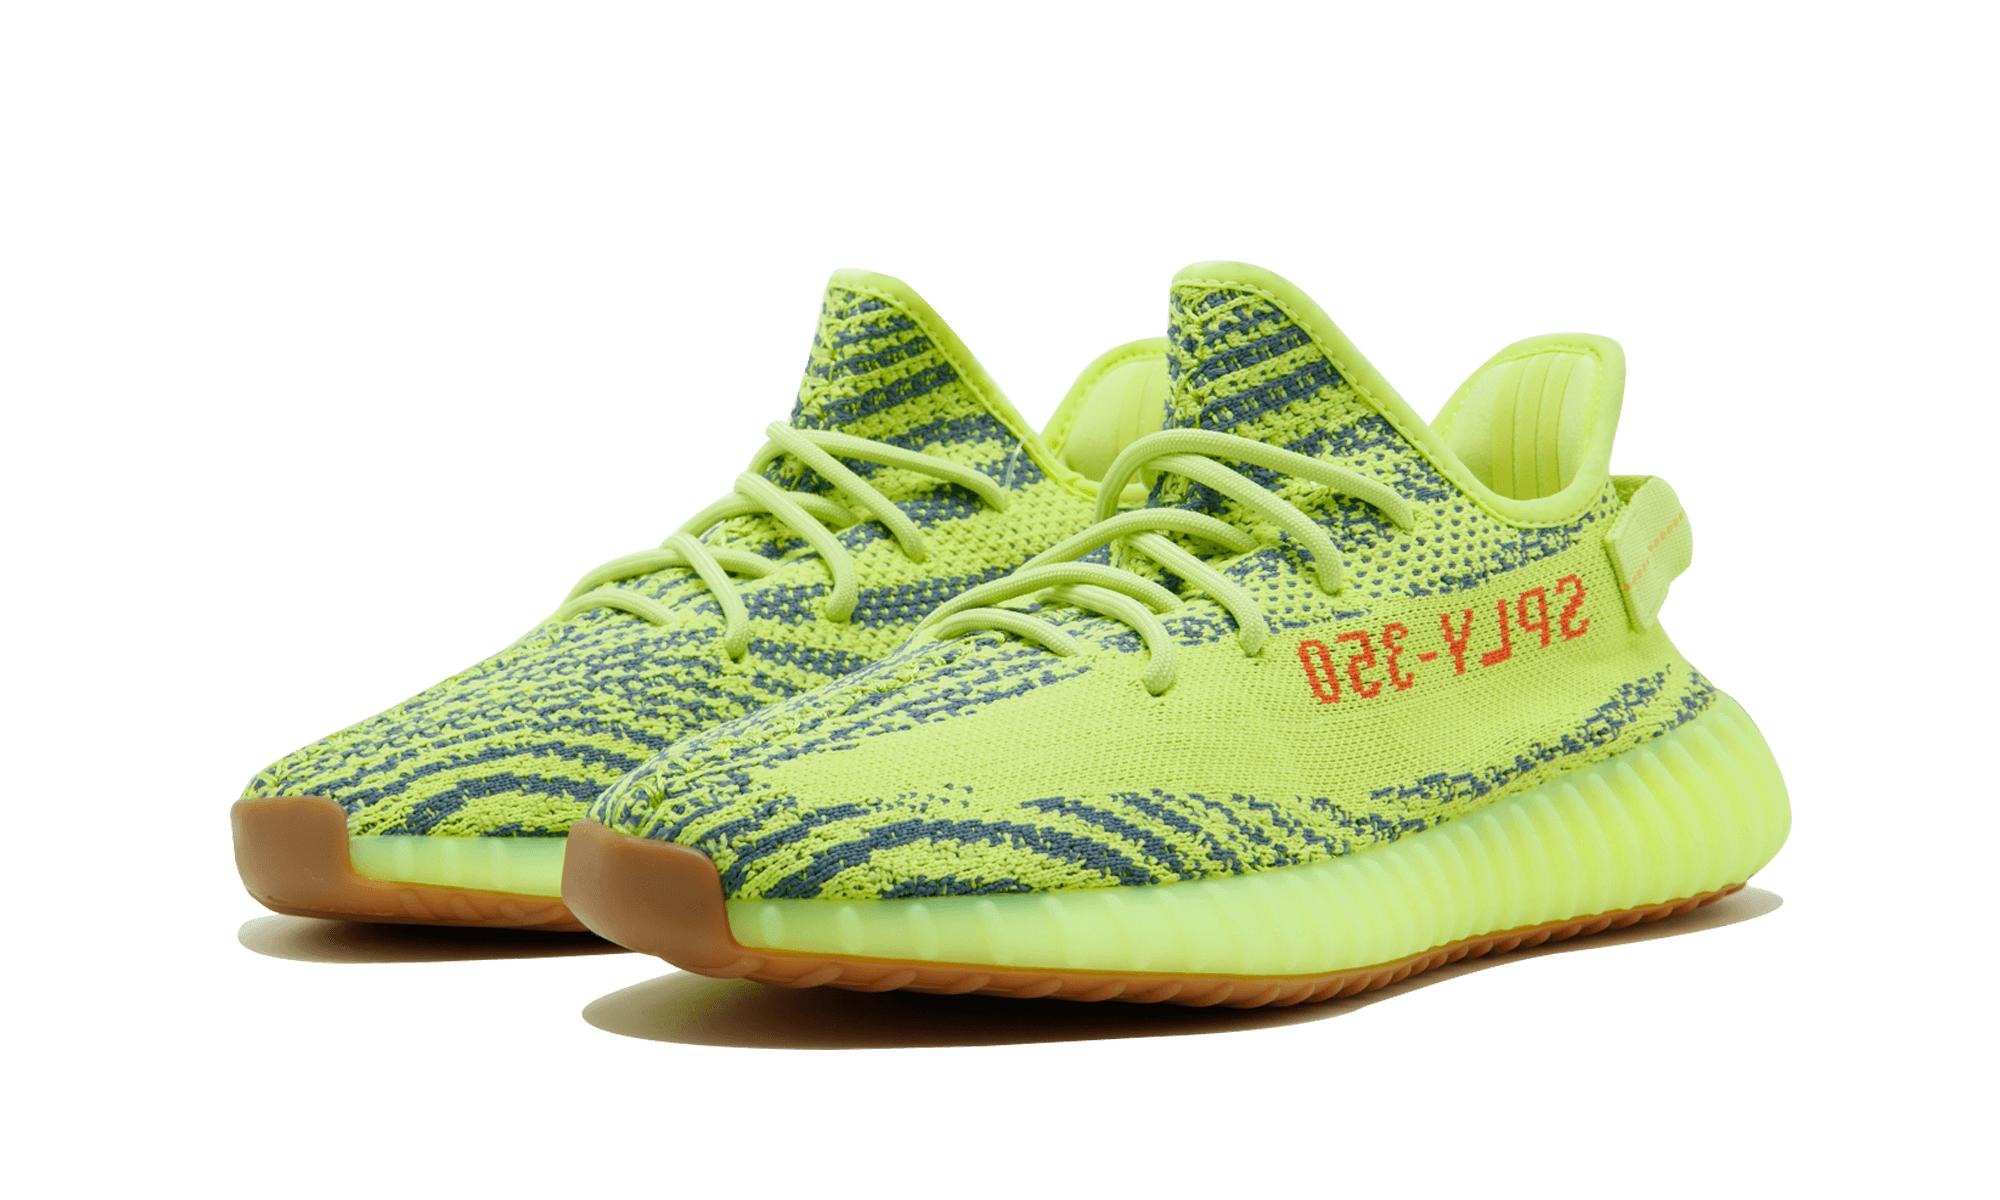 a7171eece6a adidas Yeezy Boost 350 V2 in Green for Men - Save 42% - Lyst